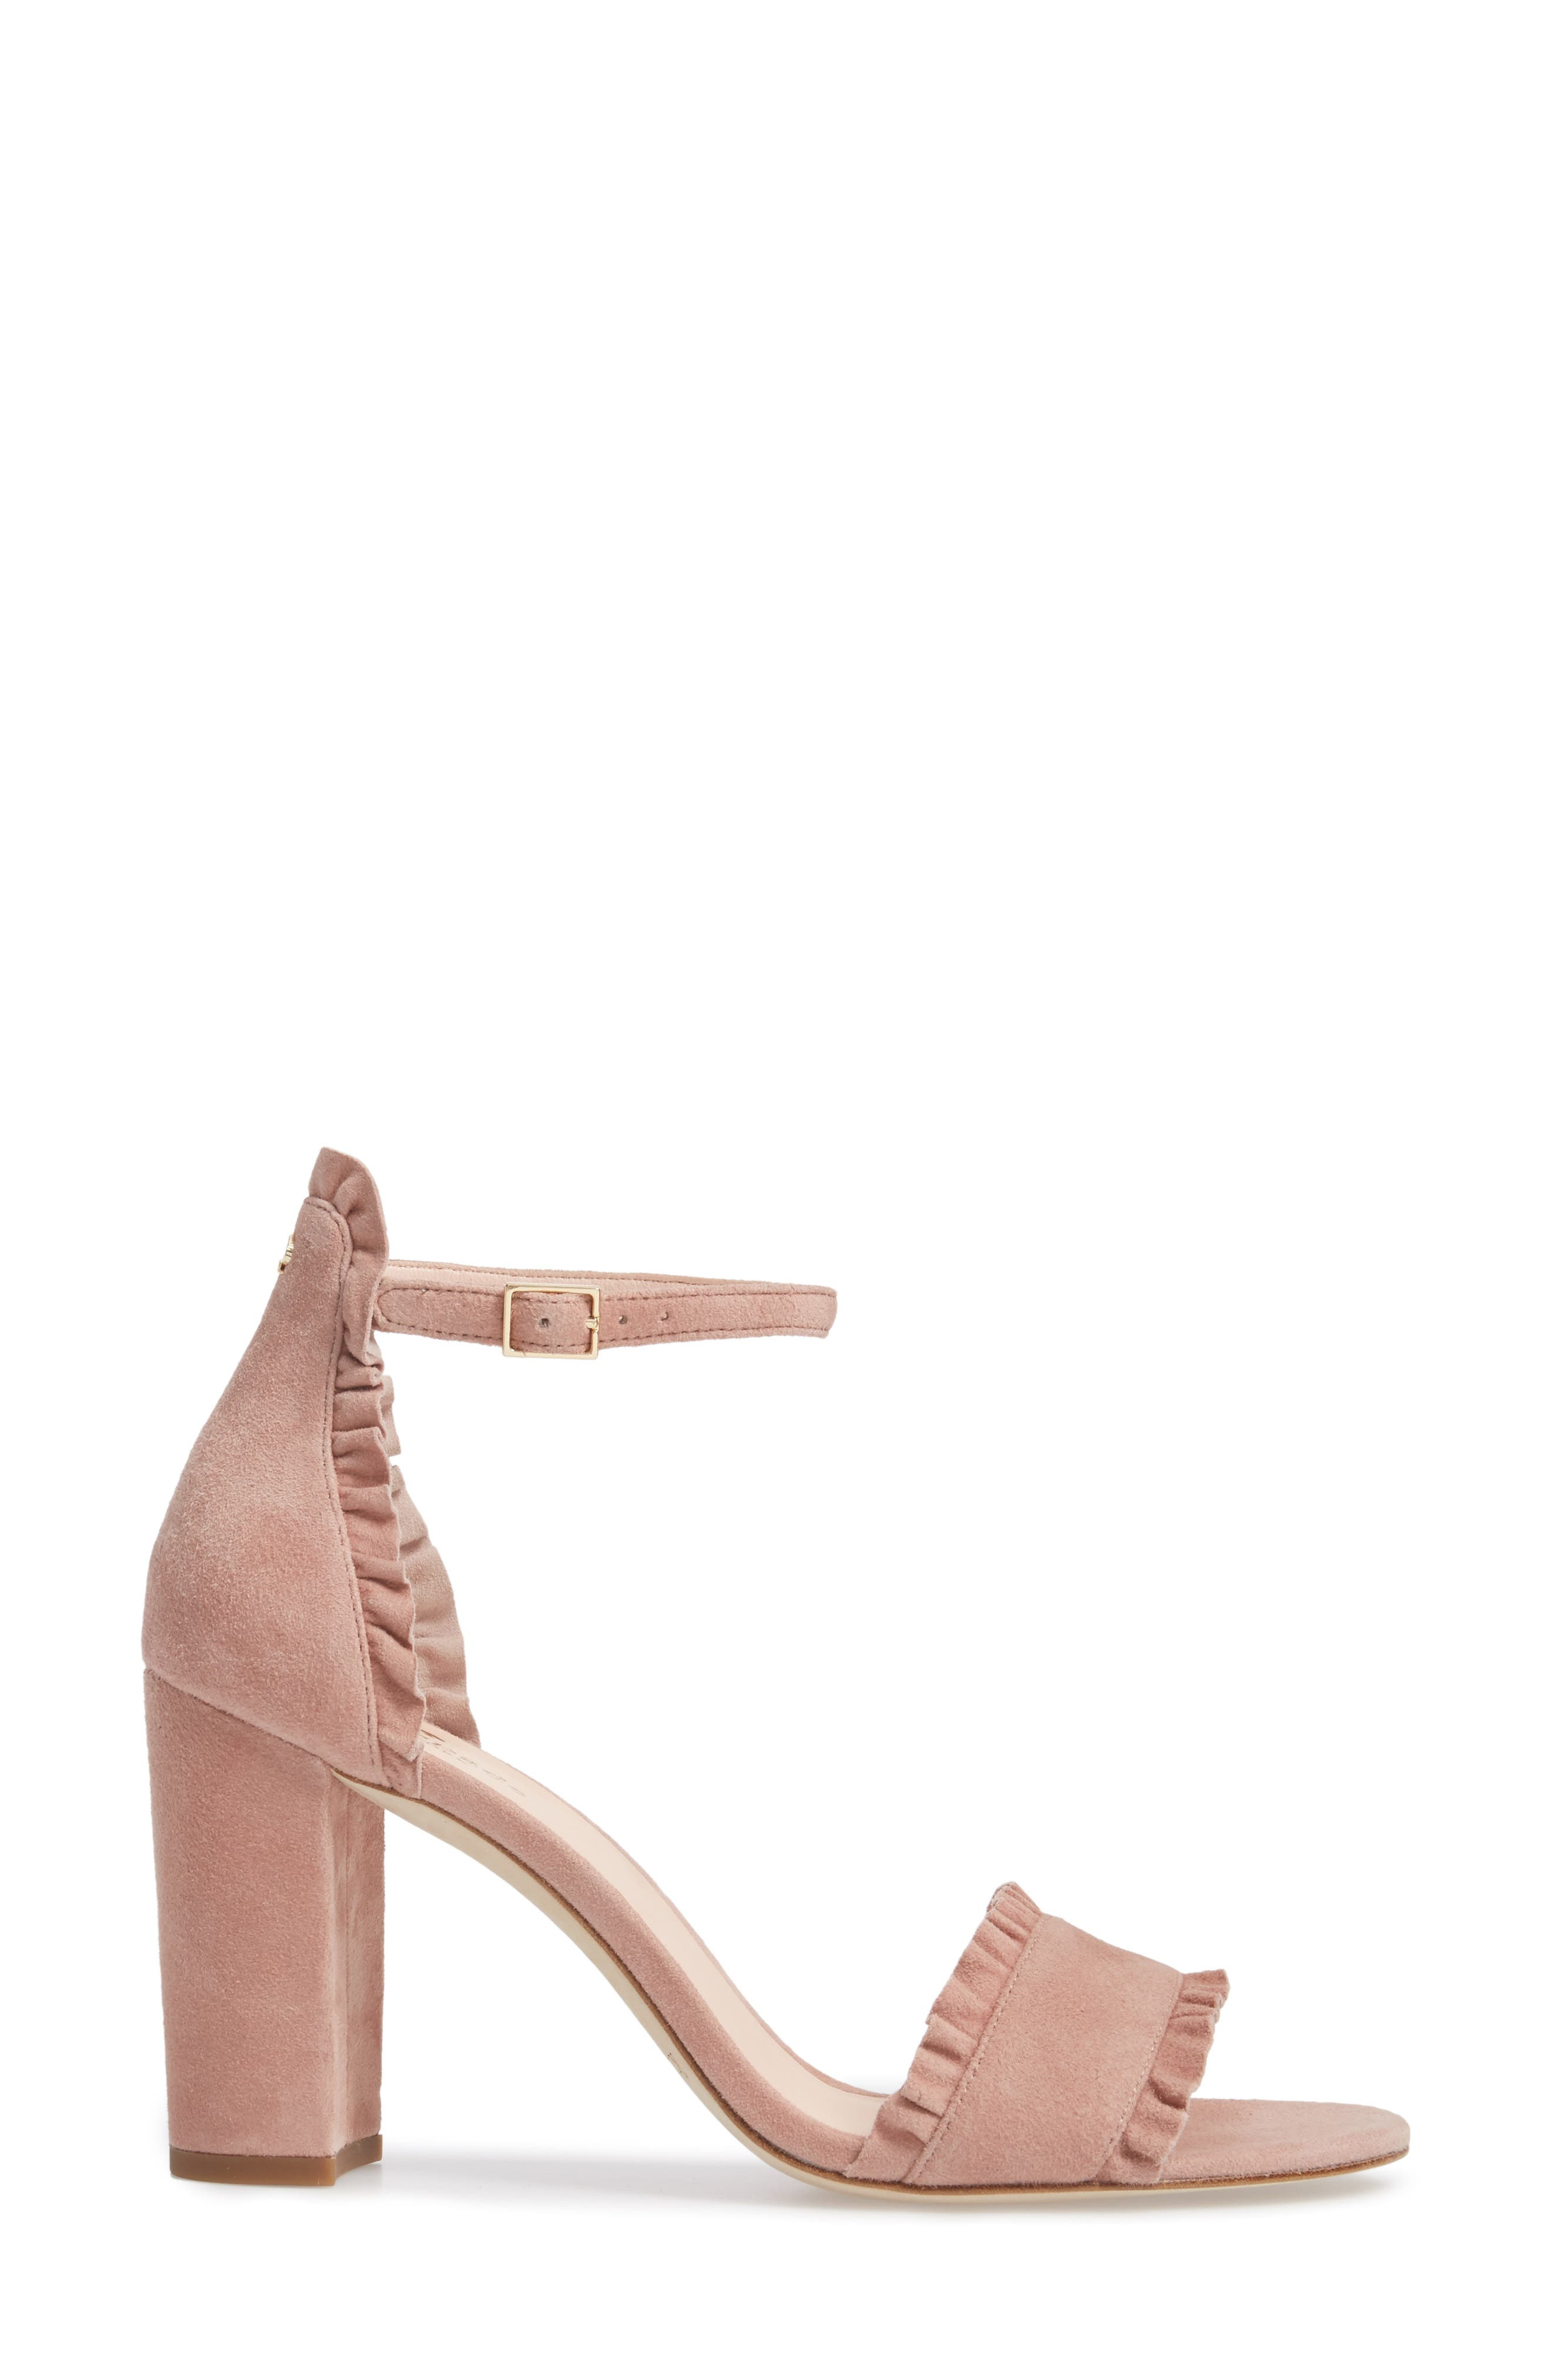 odele ruffle sandal,                             Alternate thumbnail 6, color,